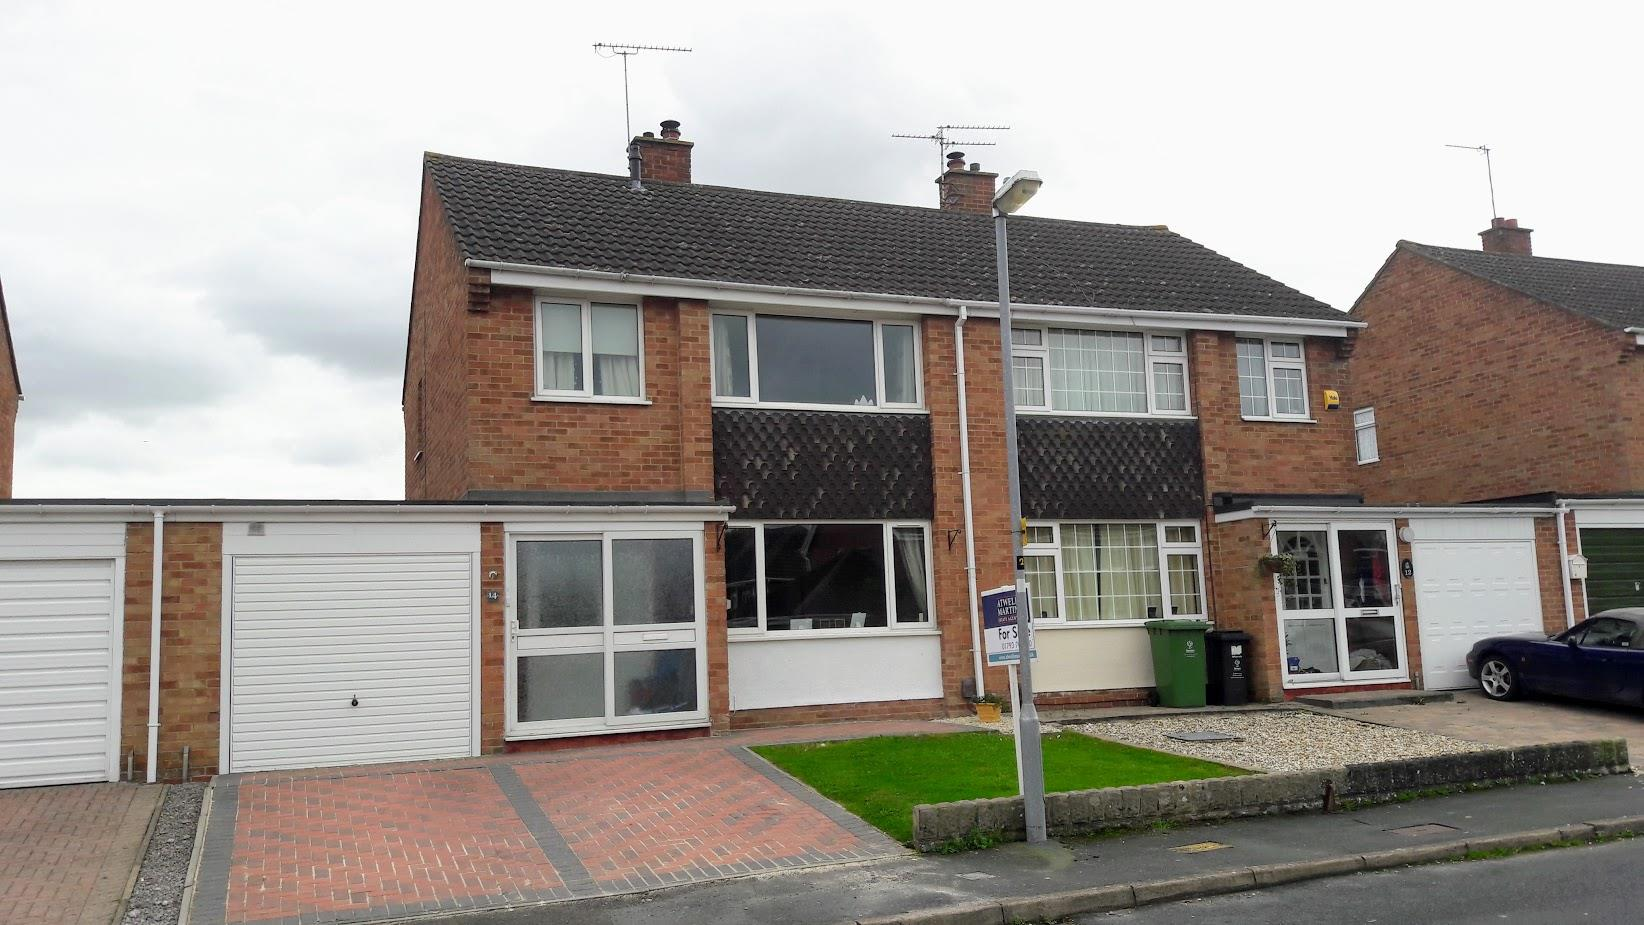 3 Bedrooms Semi Detached House for sale in Cairndow Way, Upper Stratton, Swindon